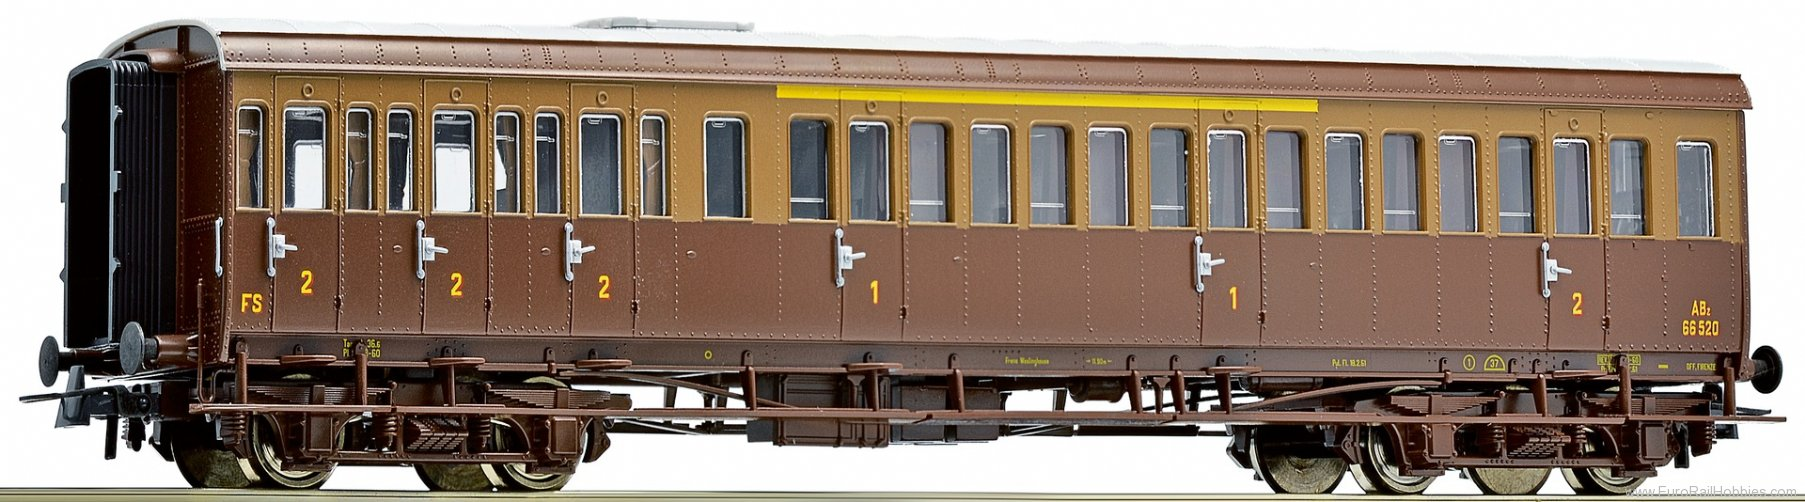 Roco 64978 1st/2nd class passenger carriage, FS